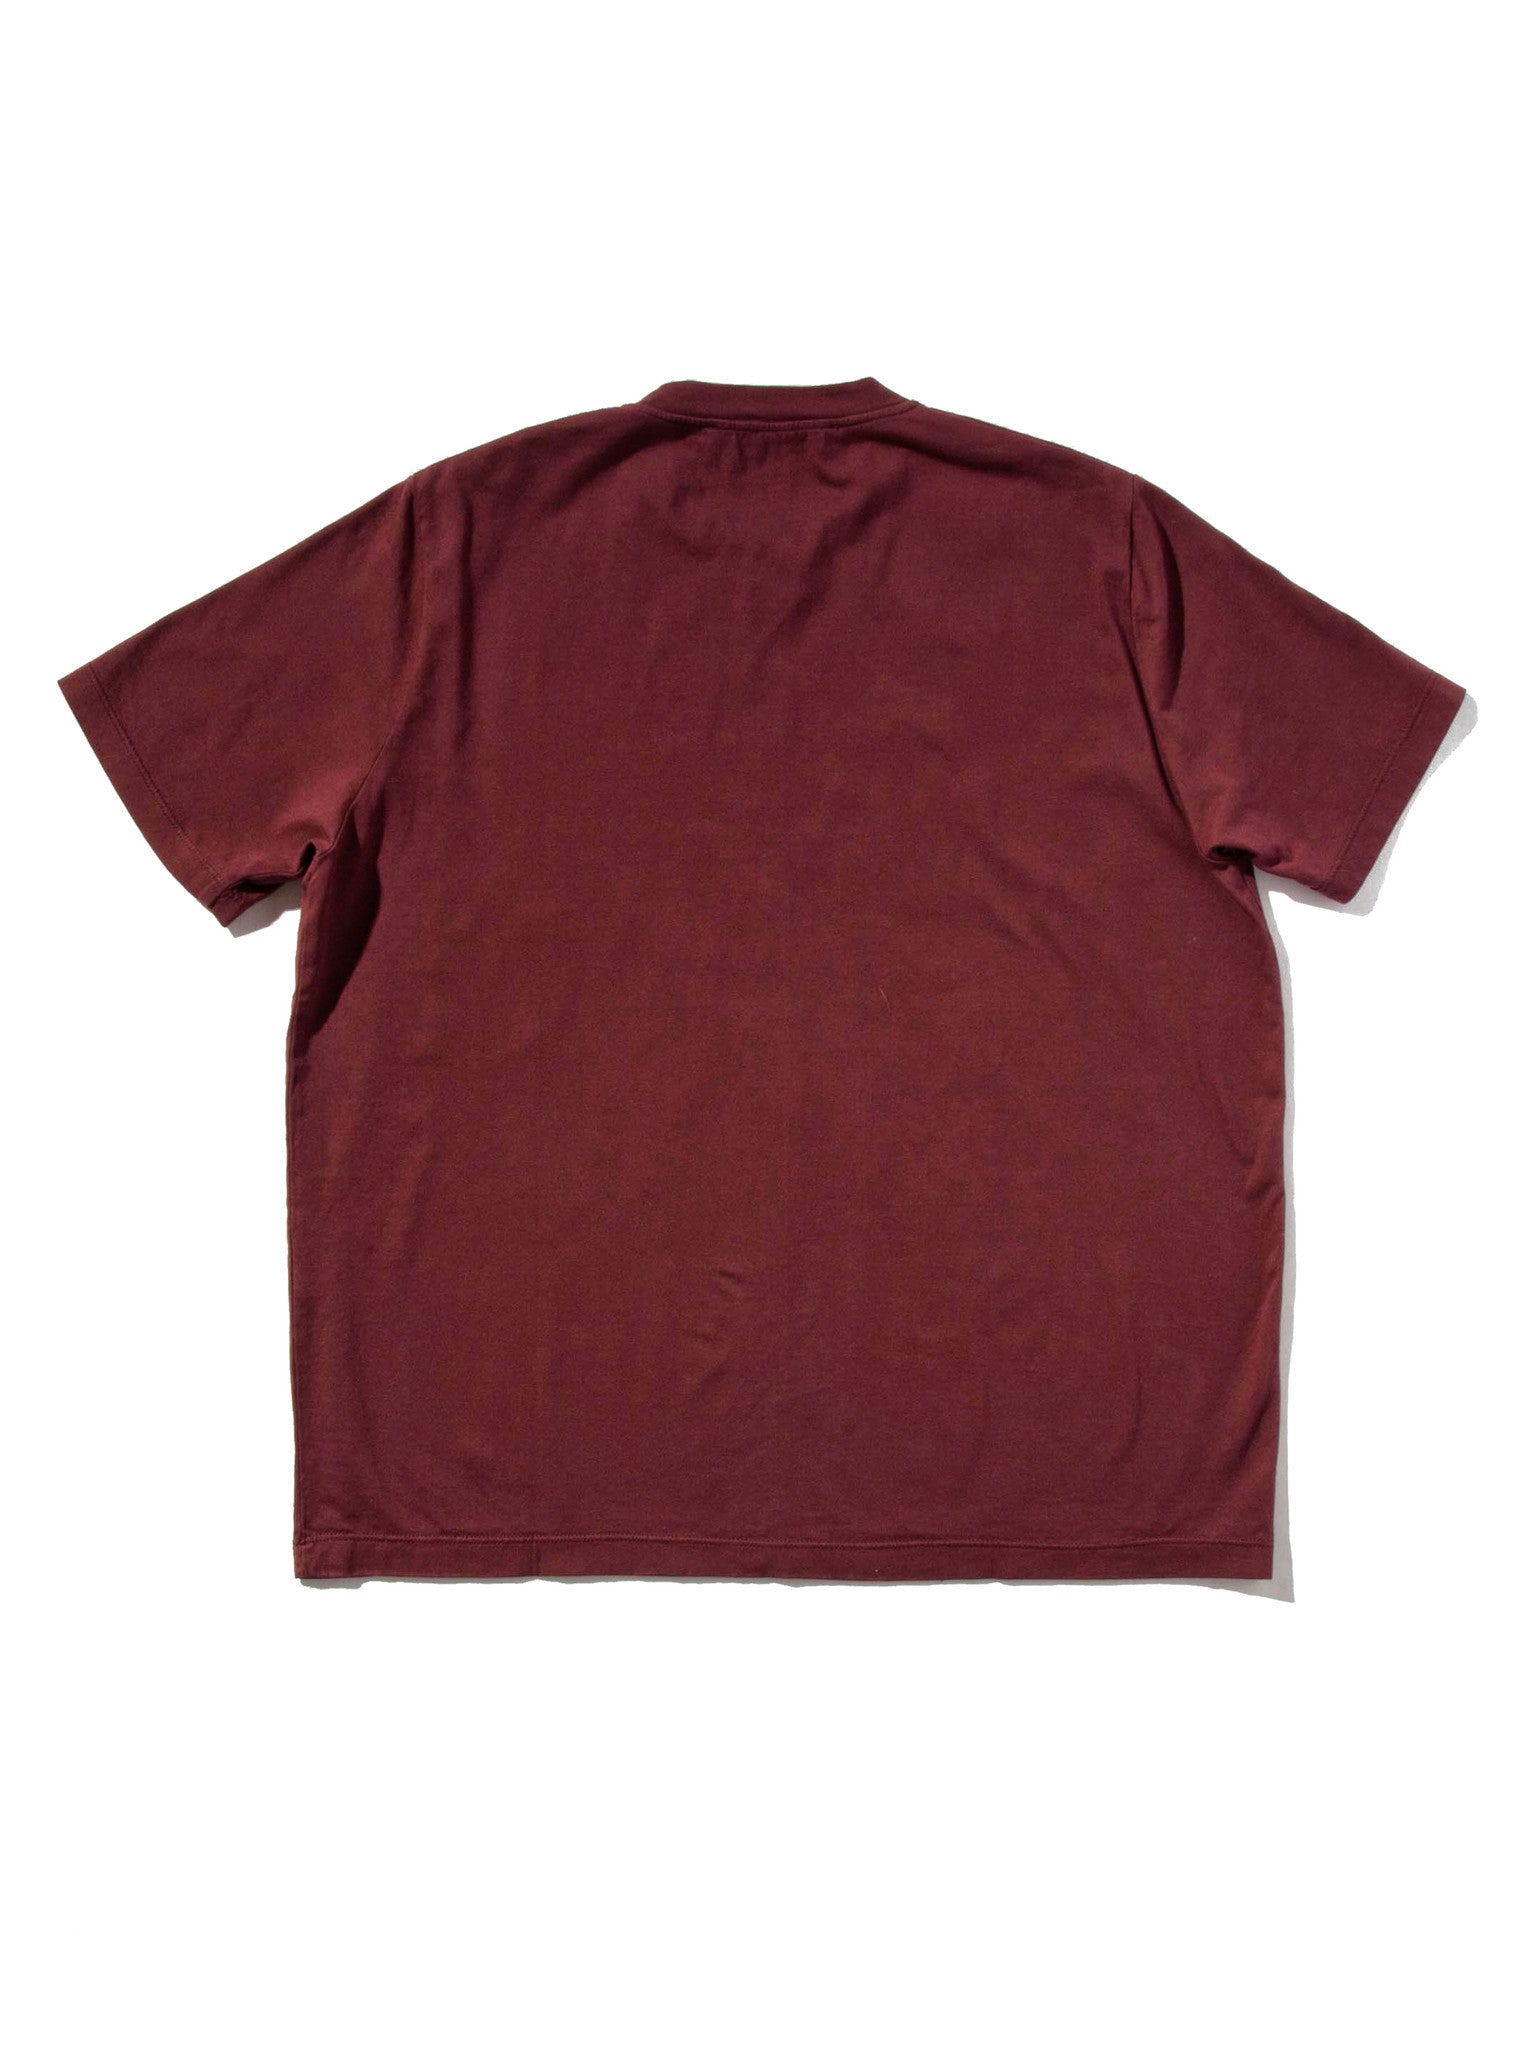 Burgundy Jersey T-Shirt (Boxy Fit) 5